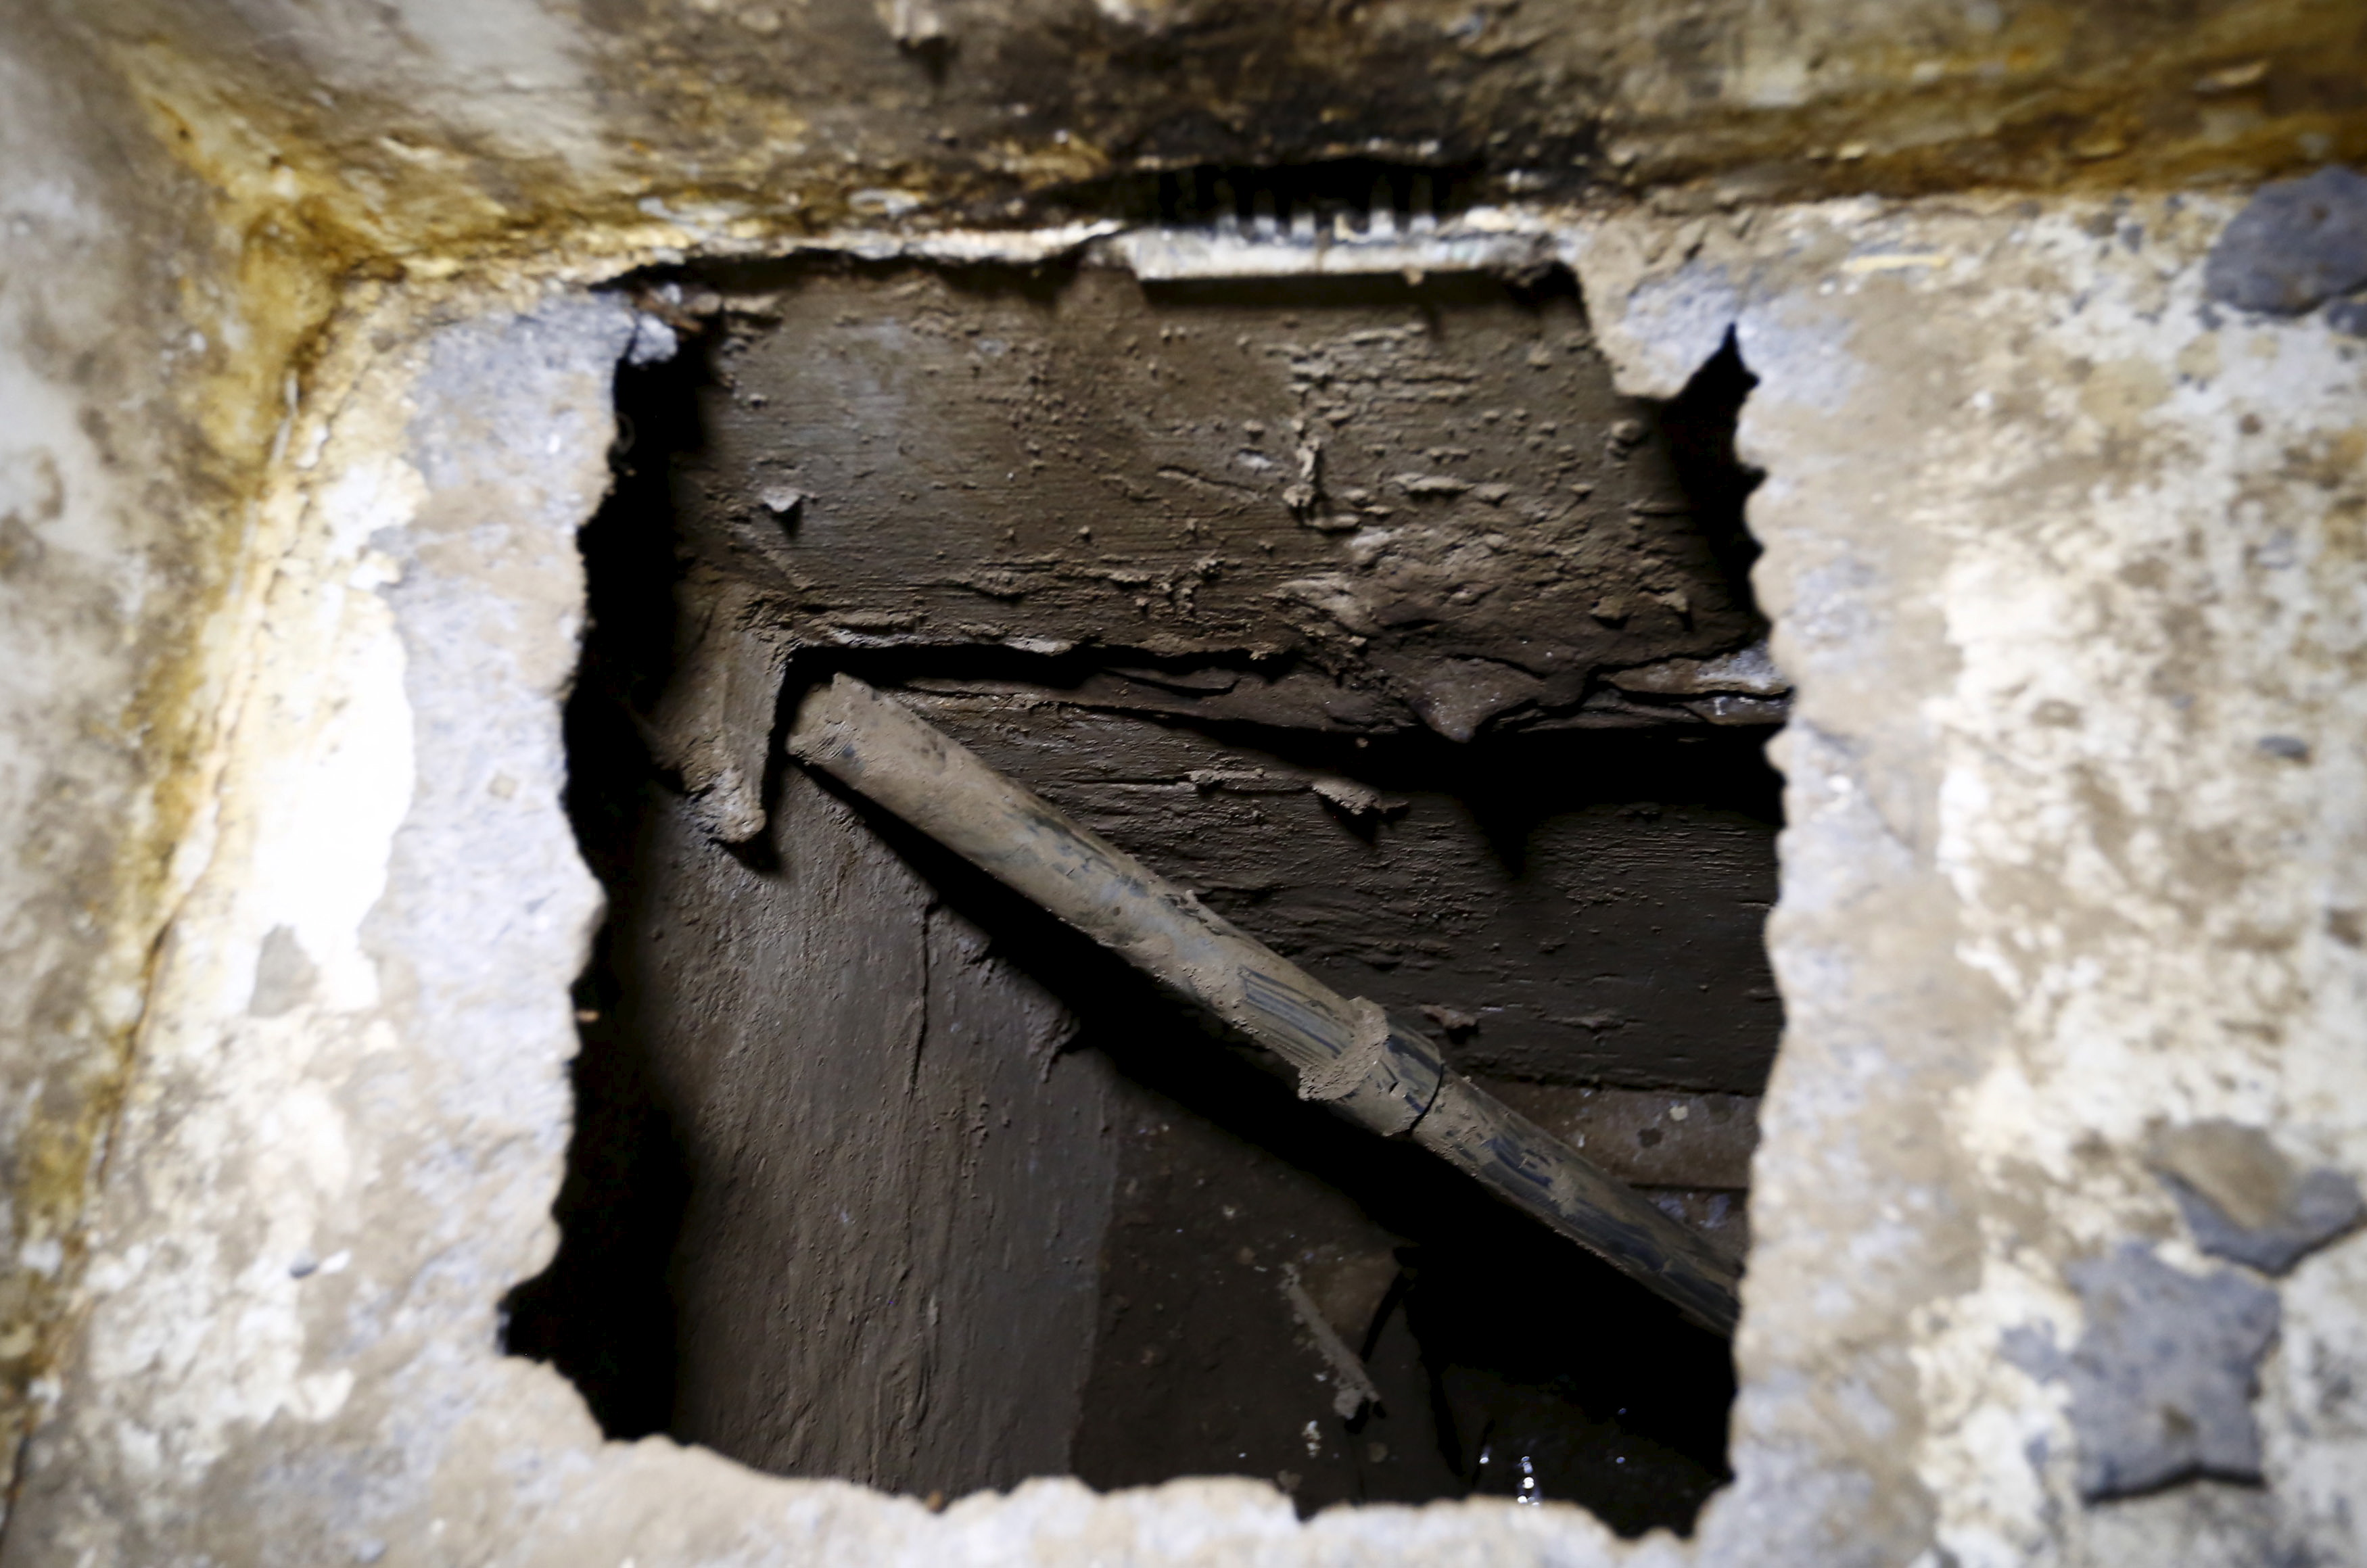 "A view of the opening of a tunnel, which is connected to a warehouse, inside drug lord Joaquin ""El Chapo"" Guzman's cell in the Altiplano Federal Penitentiary, where he escaped from, in Almoloya de Juarez, on the outskirts of Mexico City, July 15, 2015. U.S. law enforcement officials met with agents of the Mexican attorney general's office this week to share information related to the escape from prison of Guzman and coordinate efforts to apprehend him, a Mexican government official said on Wednesday. REUTERS/Edgard Garrido - RTX1KGFS"